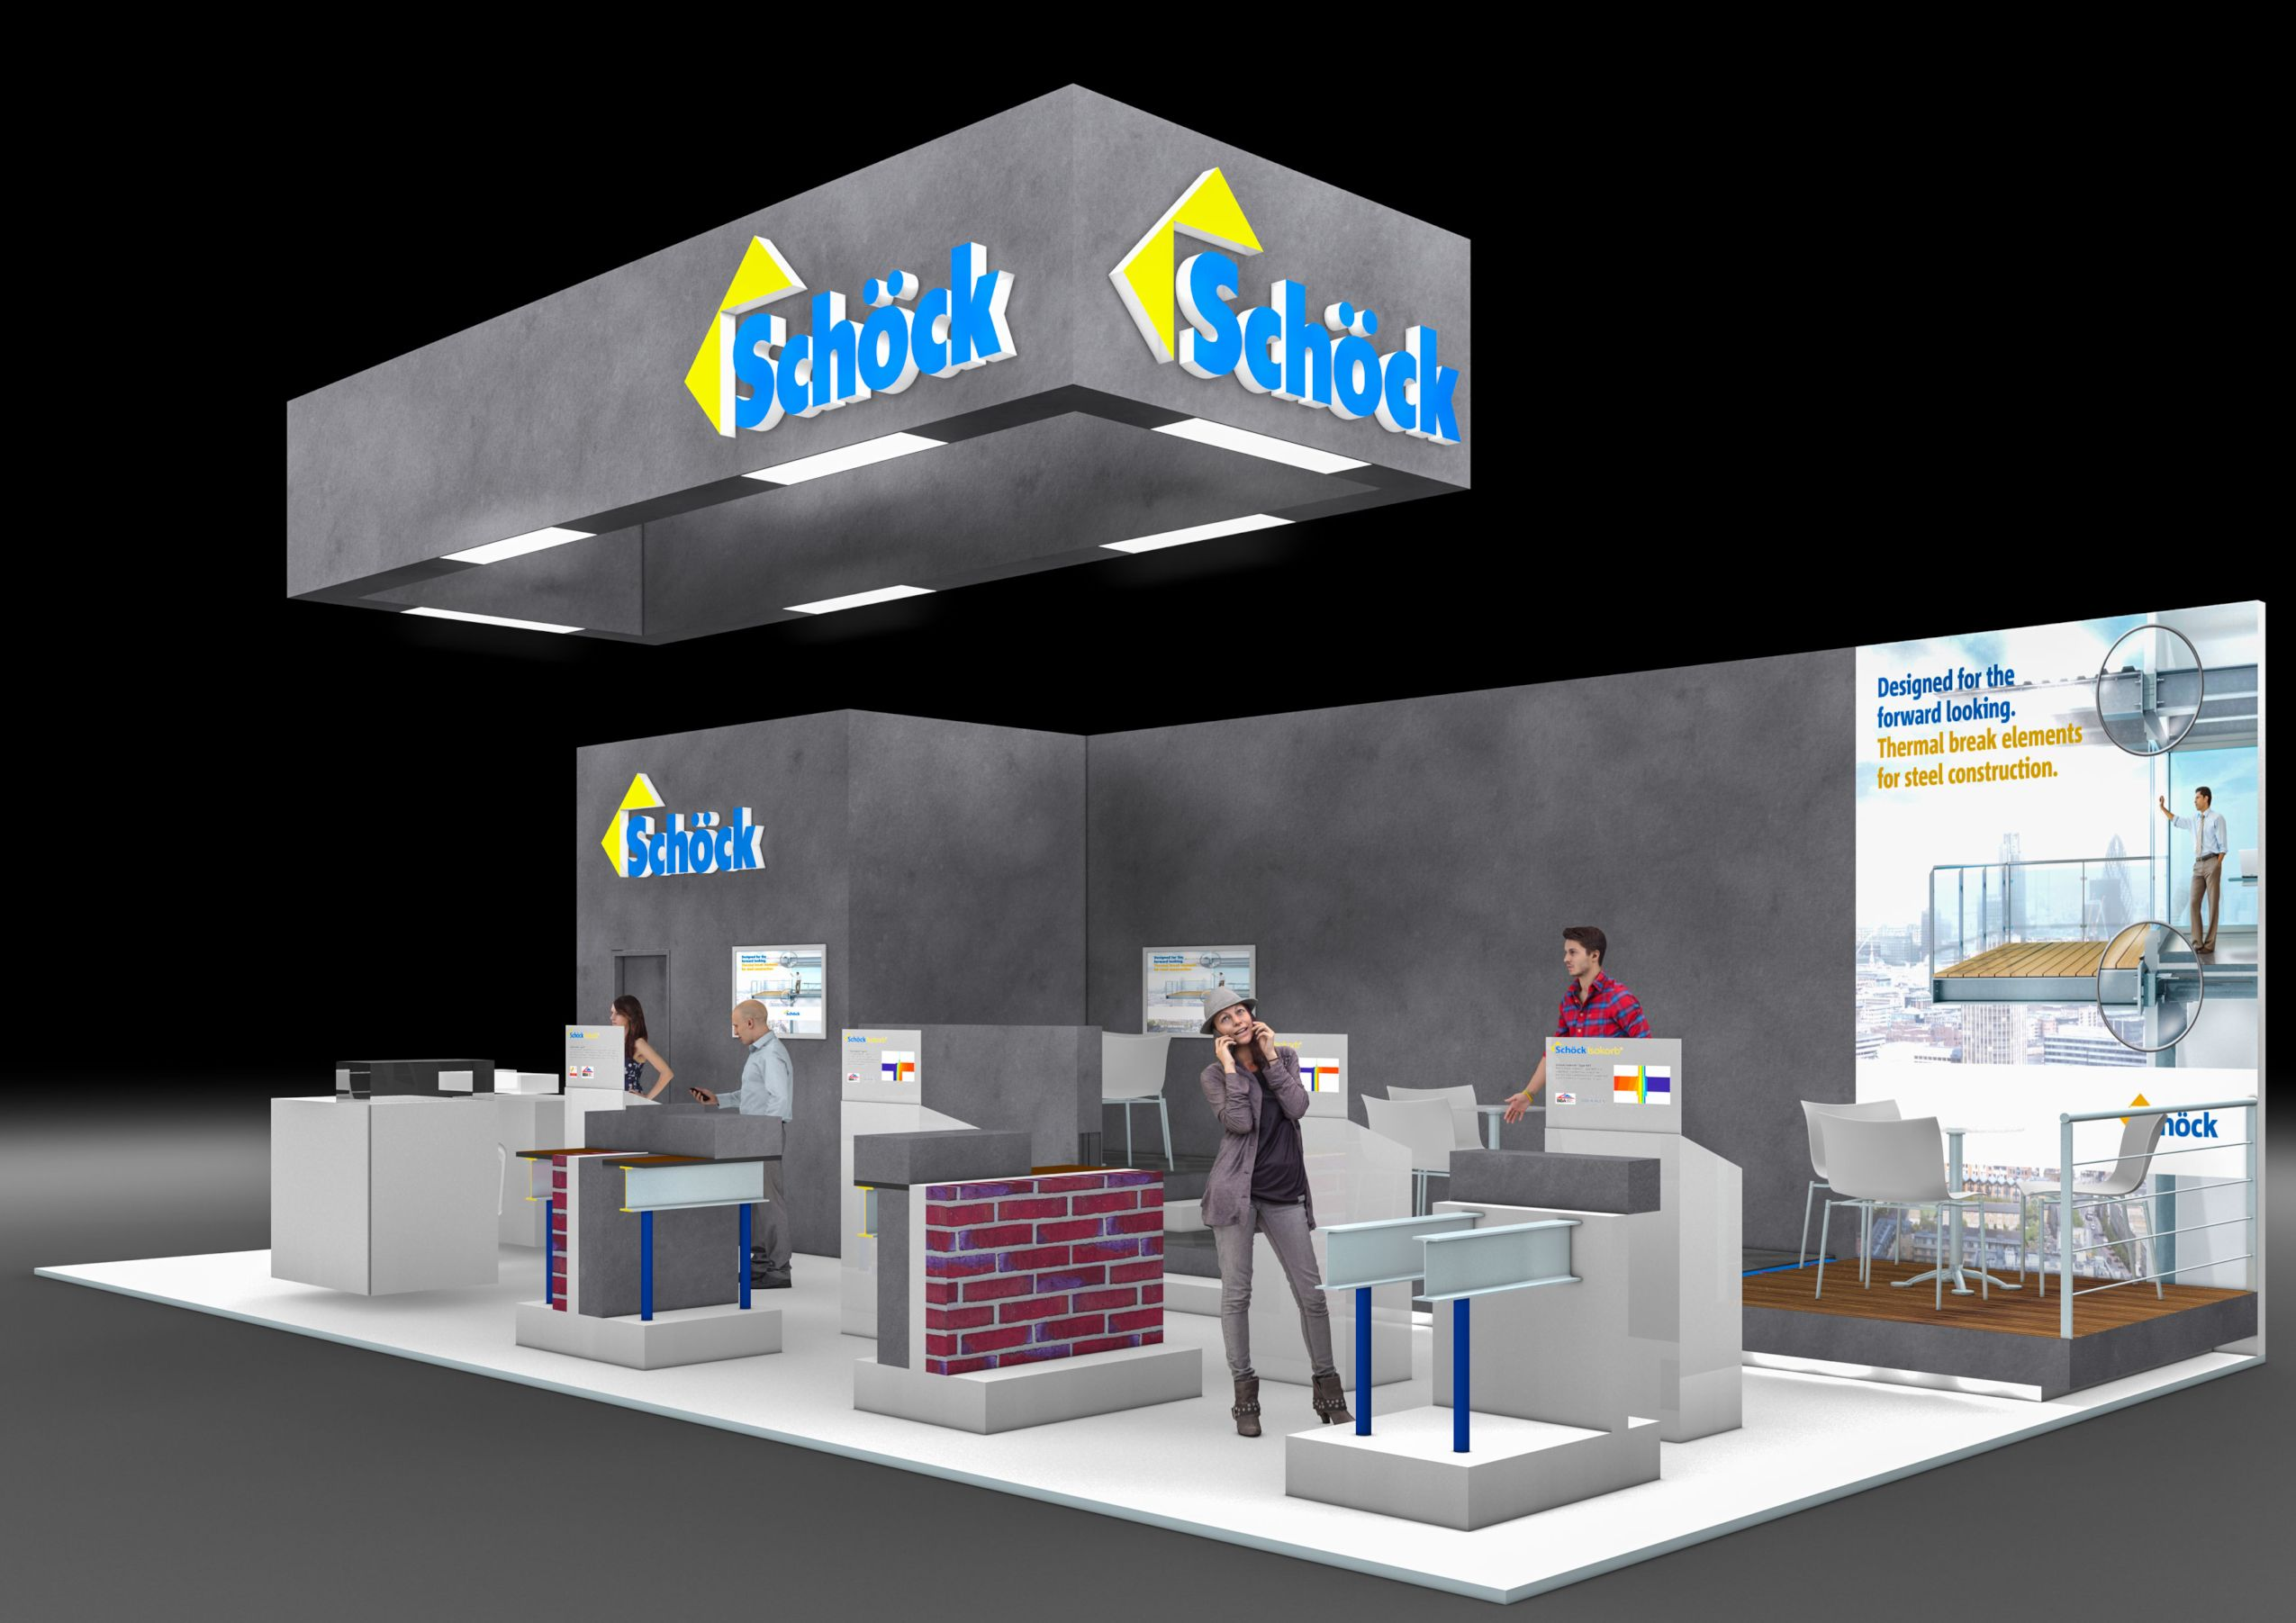 Schöck to feature full digital services at Ecobuild